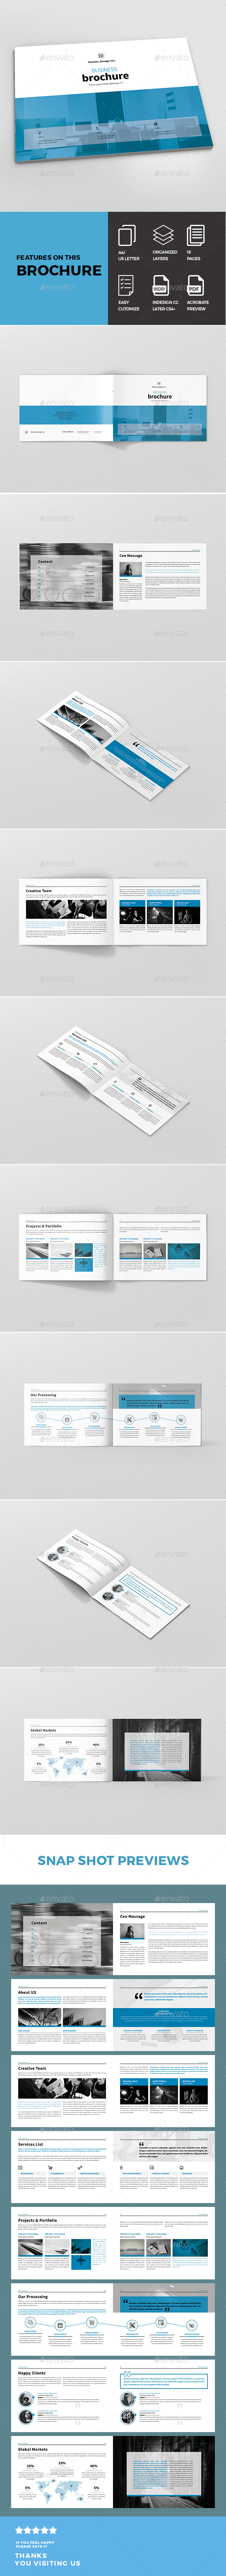 GraphicRiver Brochure 20676412